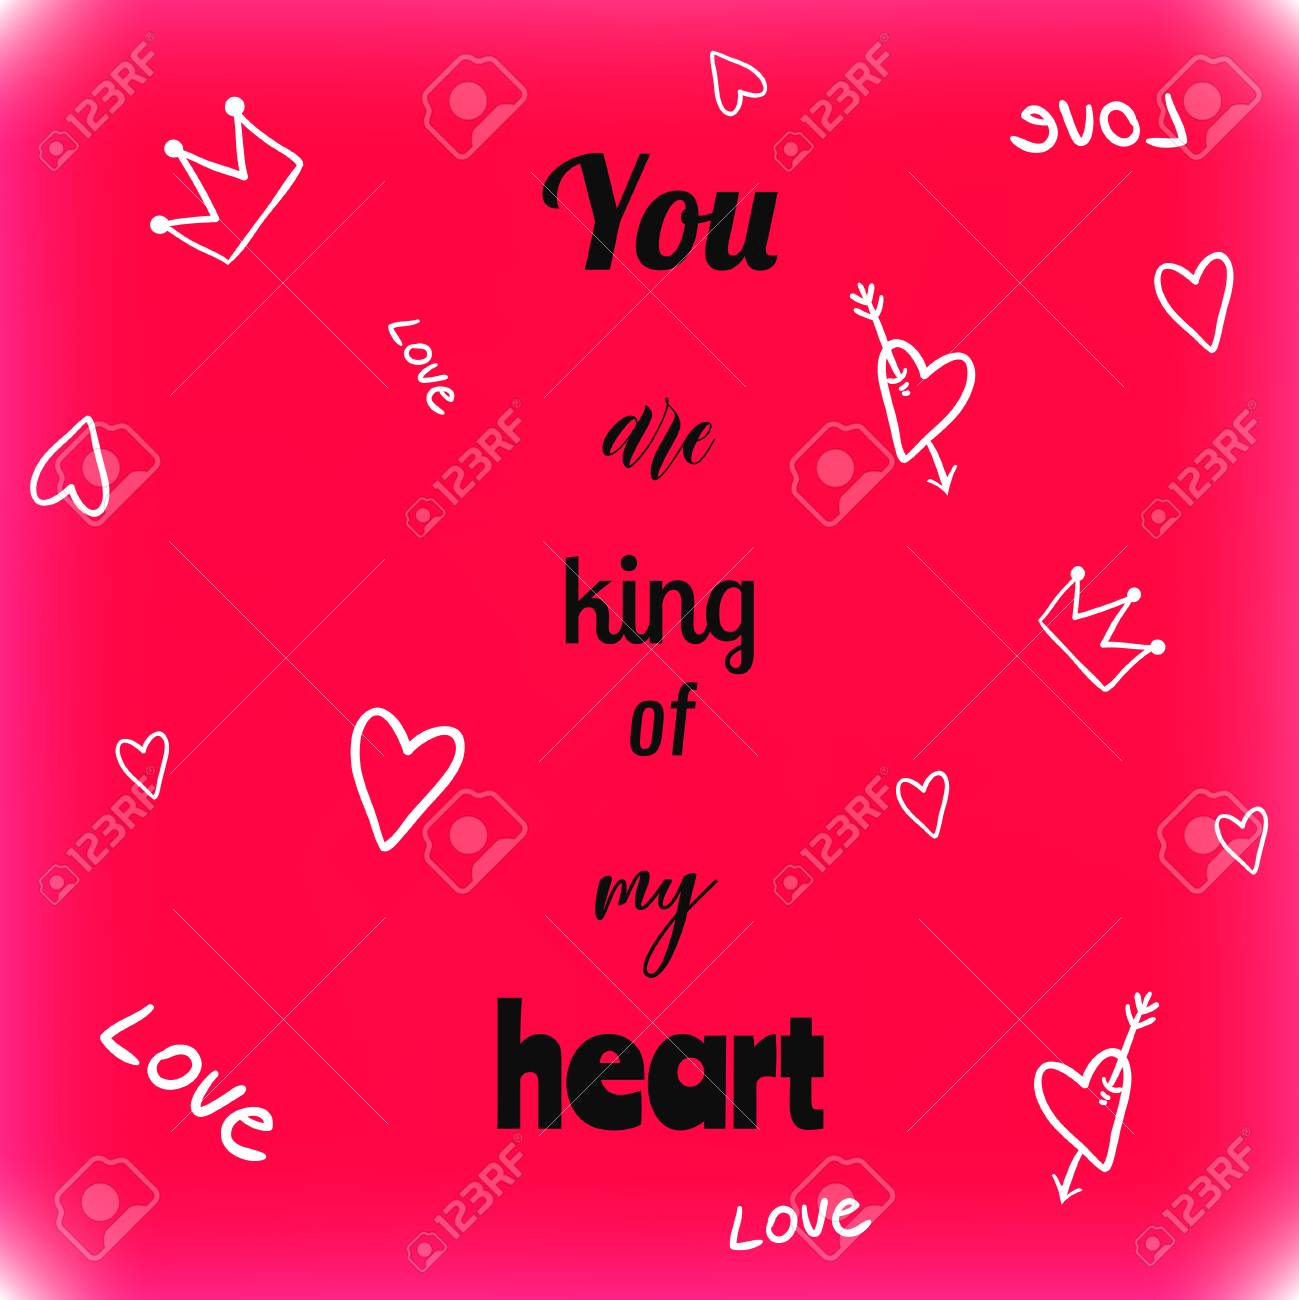 valentines day greeting card with quote you are king of my heart stock vector